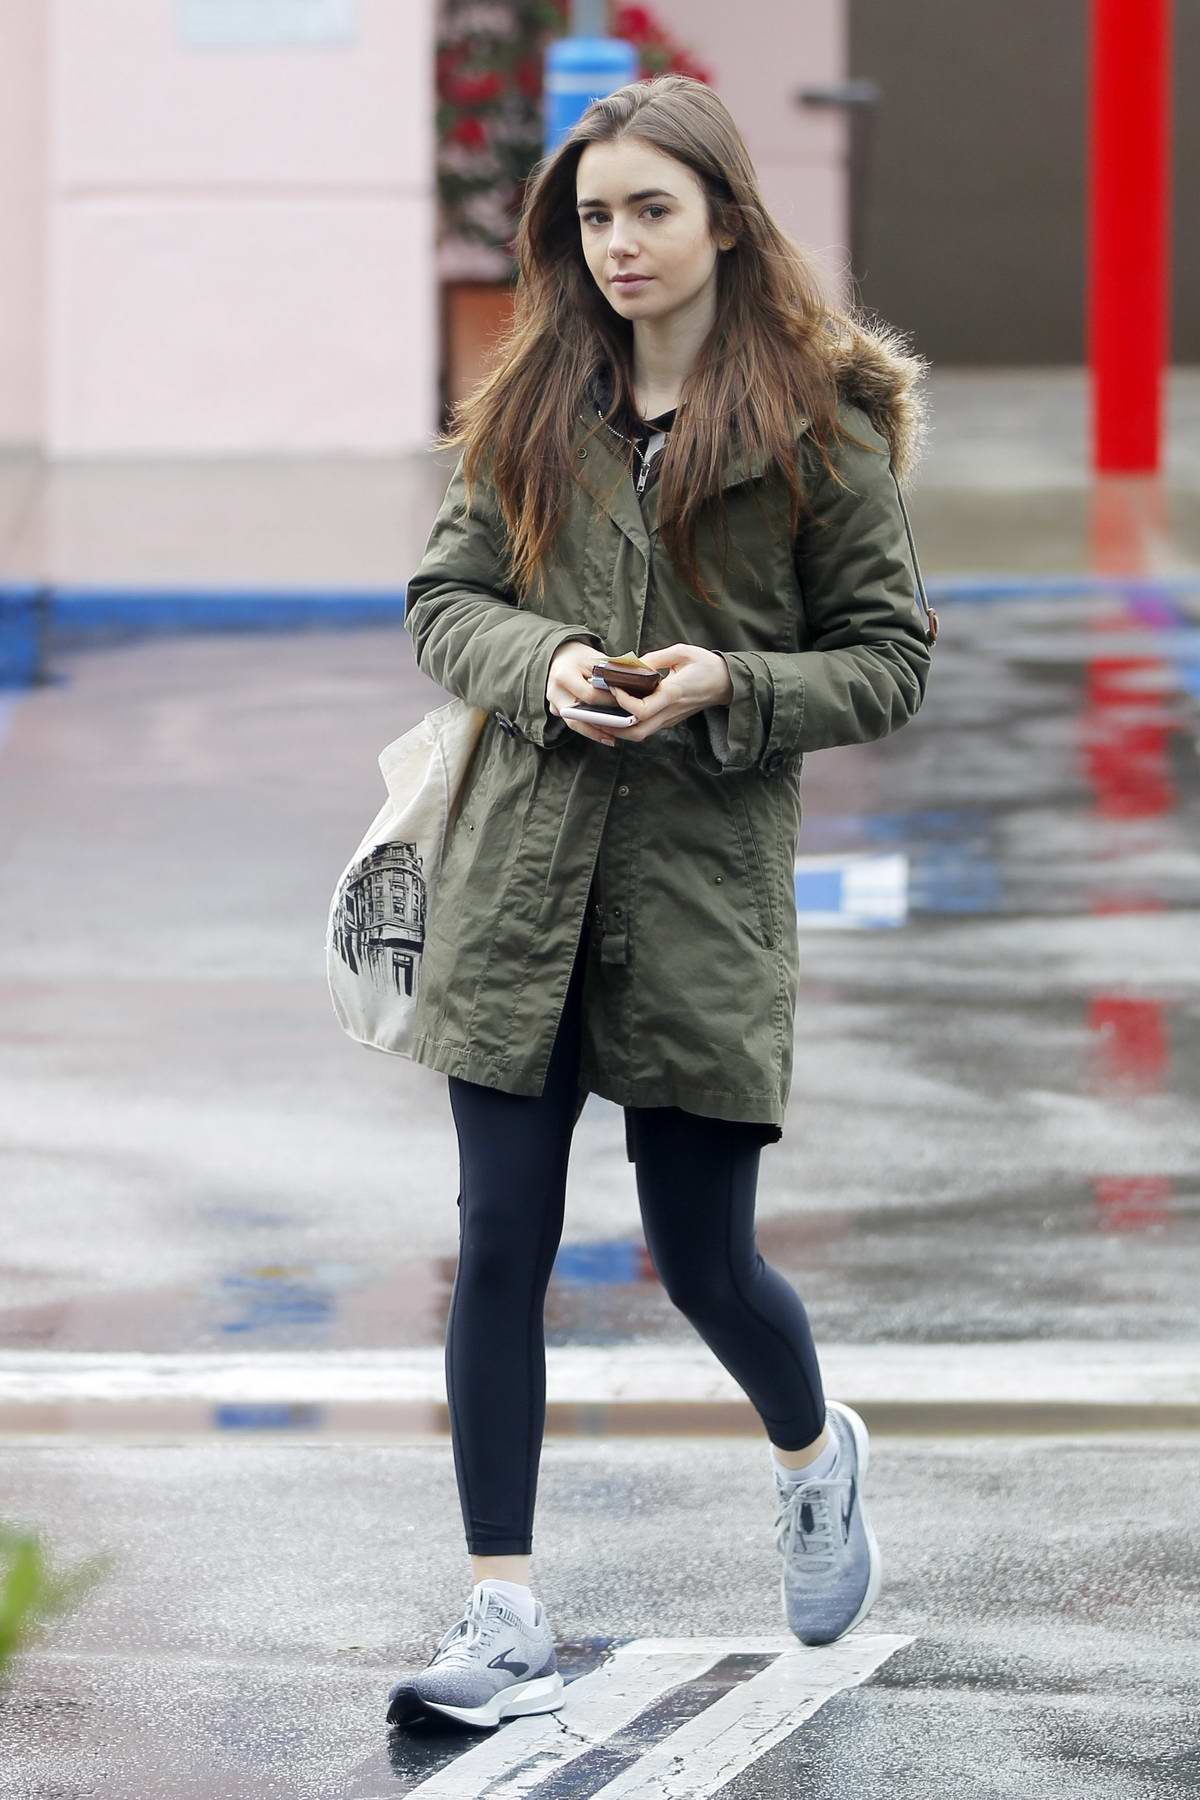 Lily Collins steps out for some grocery shopping after finishing her workout in West Hollywood, Los Angeles